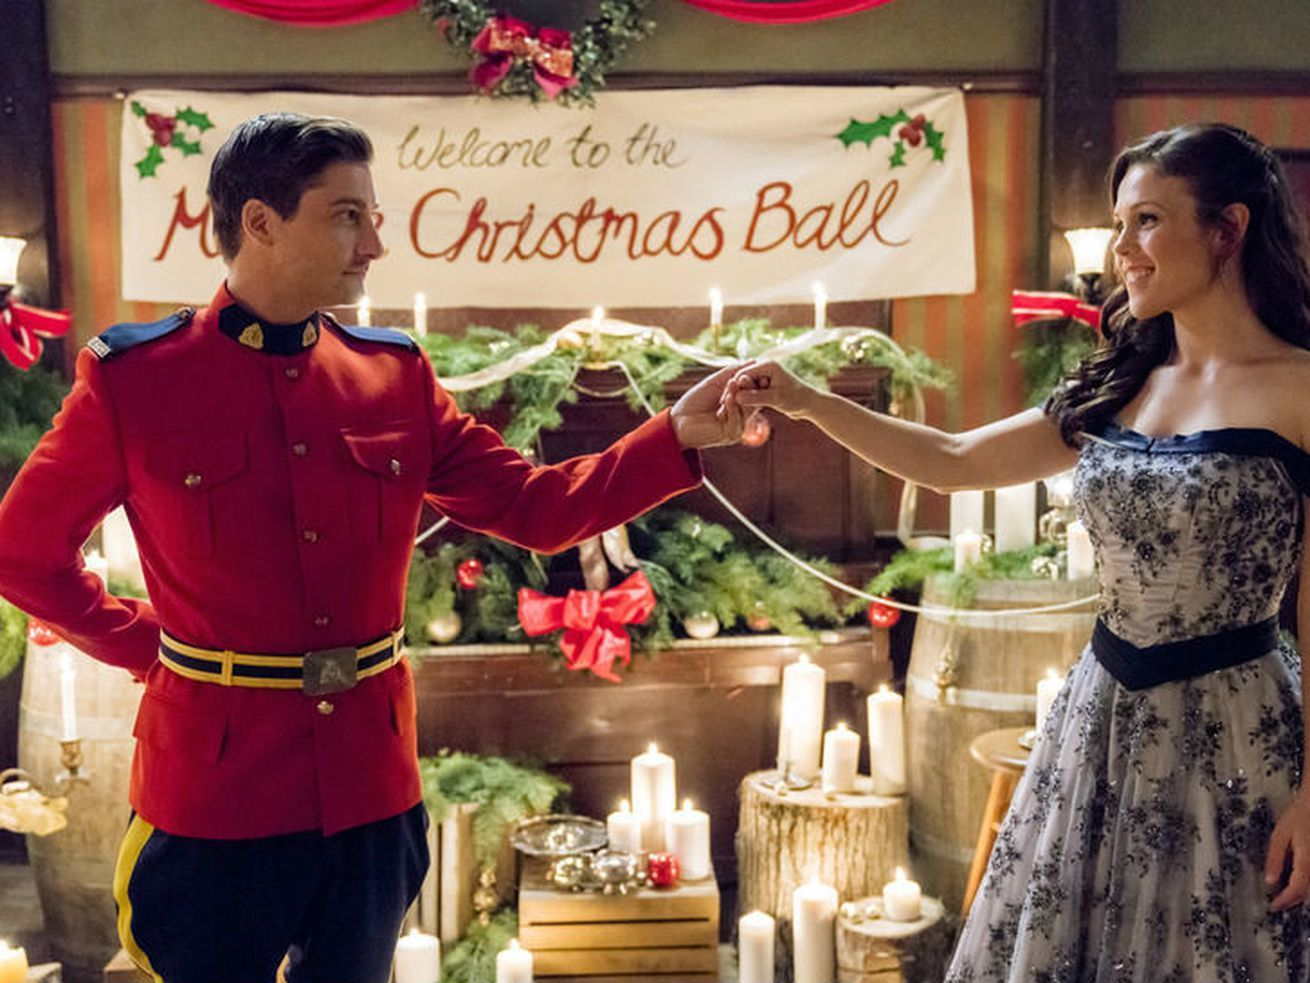 """Daniel Lissing and Erin Krakow star in the Hallmark Channel special """"When Calls the Heart: The Heart of Faith,"""" now on DVD.   Shout! Factory    He was a fan favorite. Then, he dipped. Here's why  """"When Calls the Heart"""" had some high turnover over the last few seasons. For one, Lori Loughlin, who played Mayor Abigail Stanton, was fired from the show over the college admissions scandal.  But that was after Daniel Lissing, who played Jack Thornton, left the show with his character passing away. Why"""